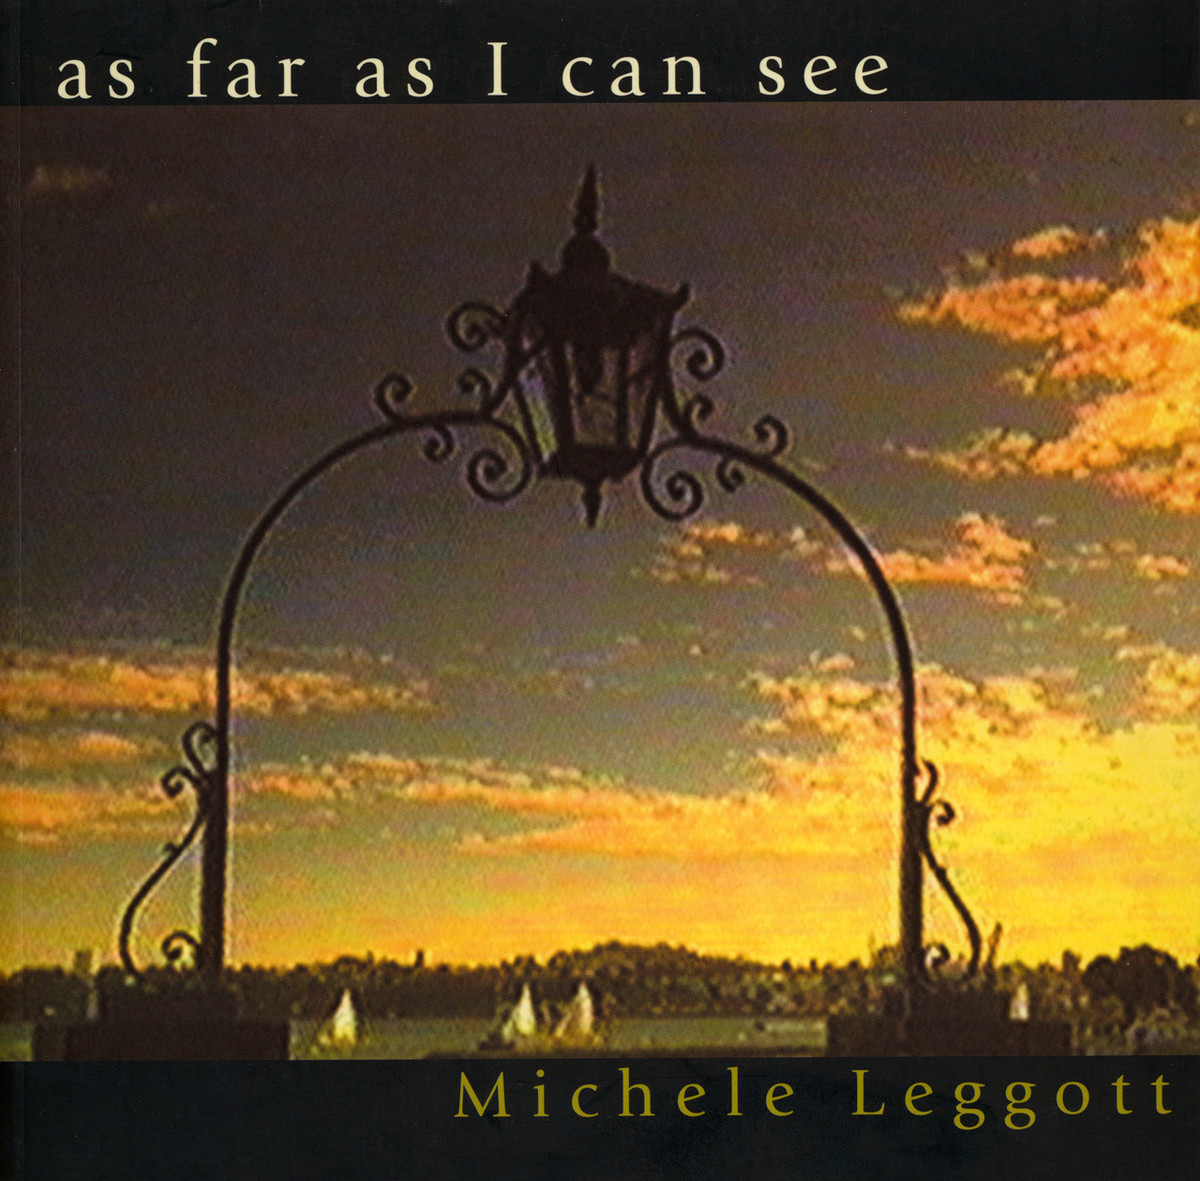 As Far as I Can See by Michele Leggott